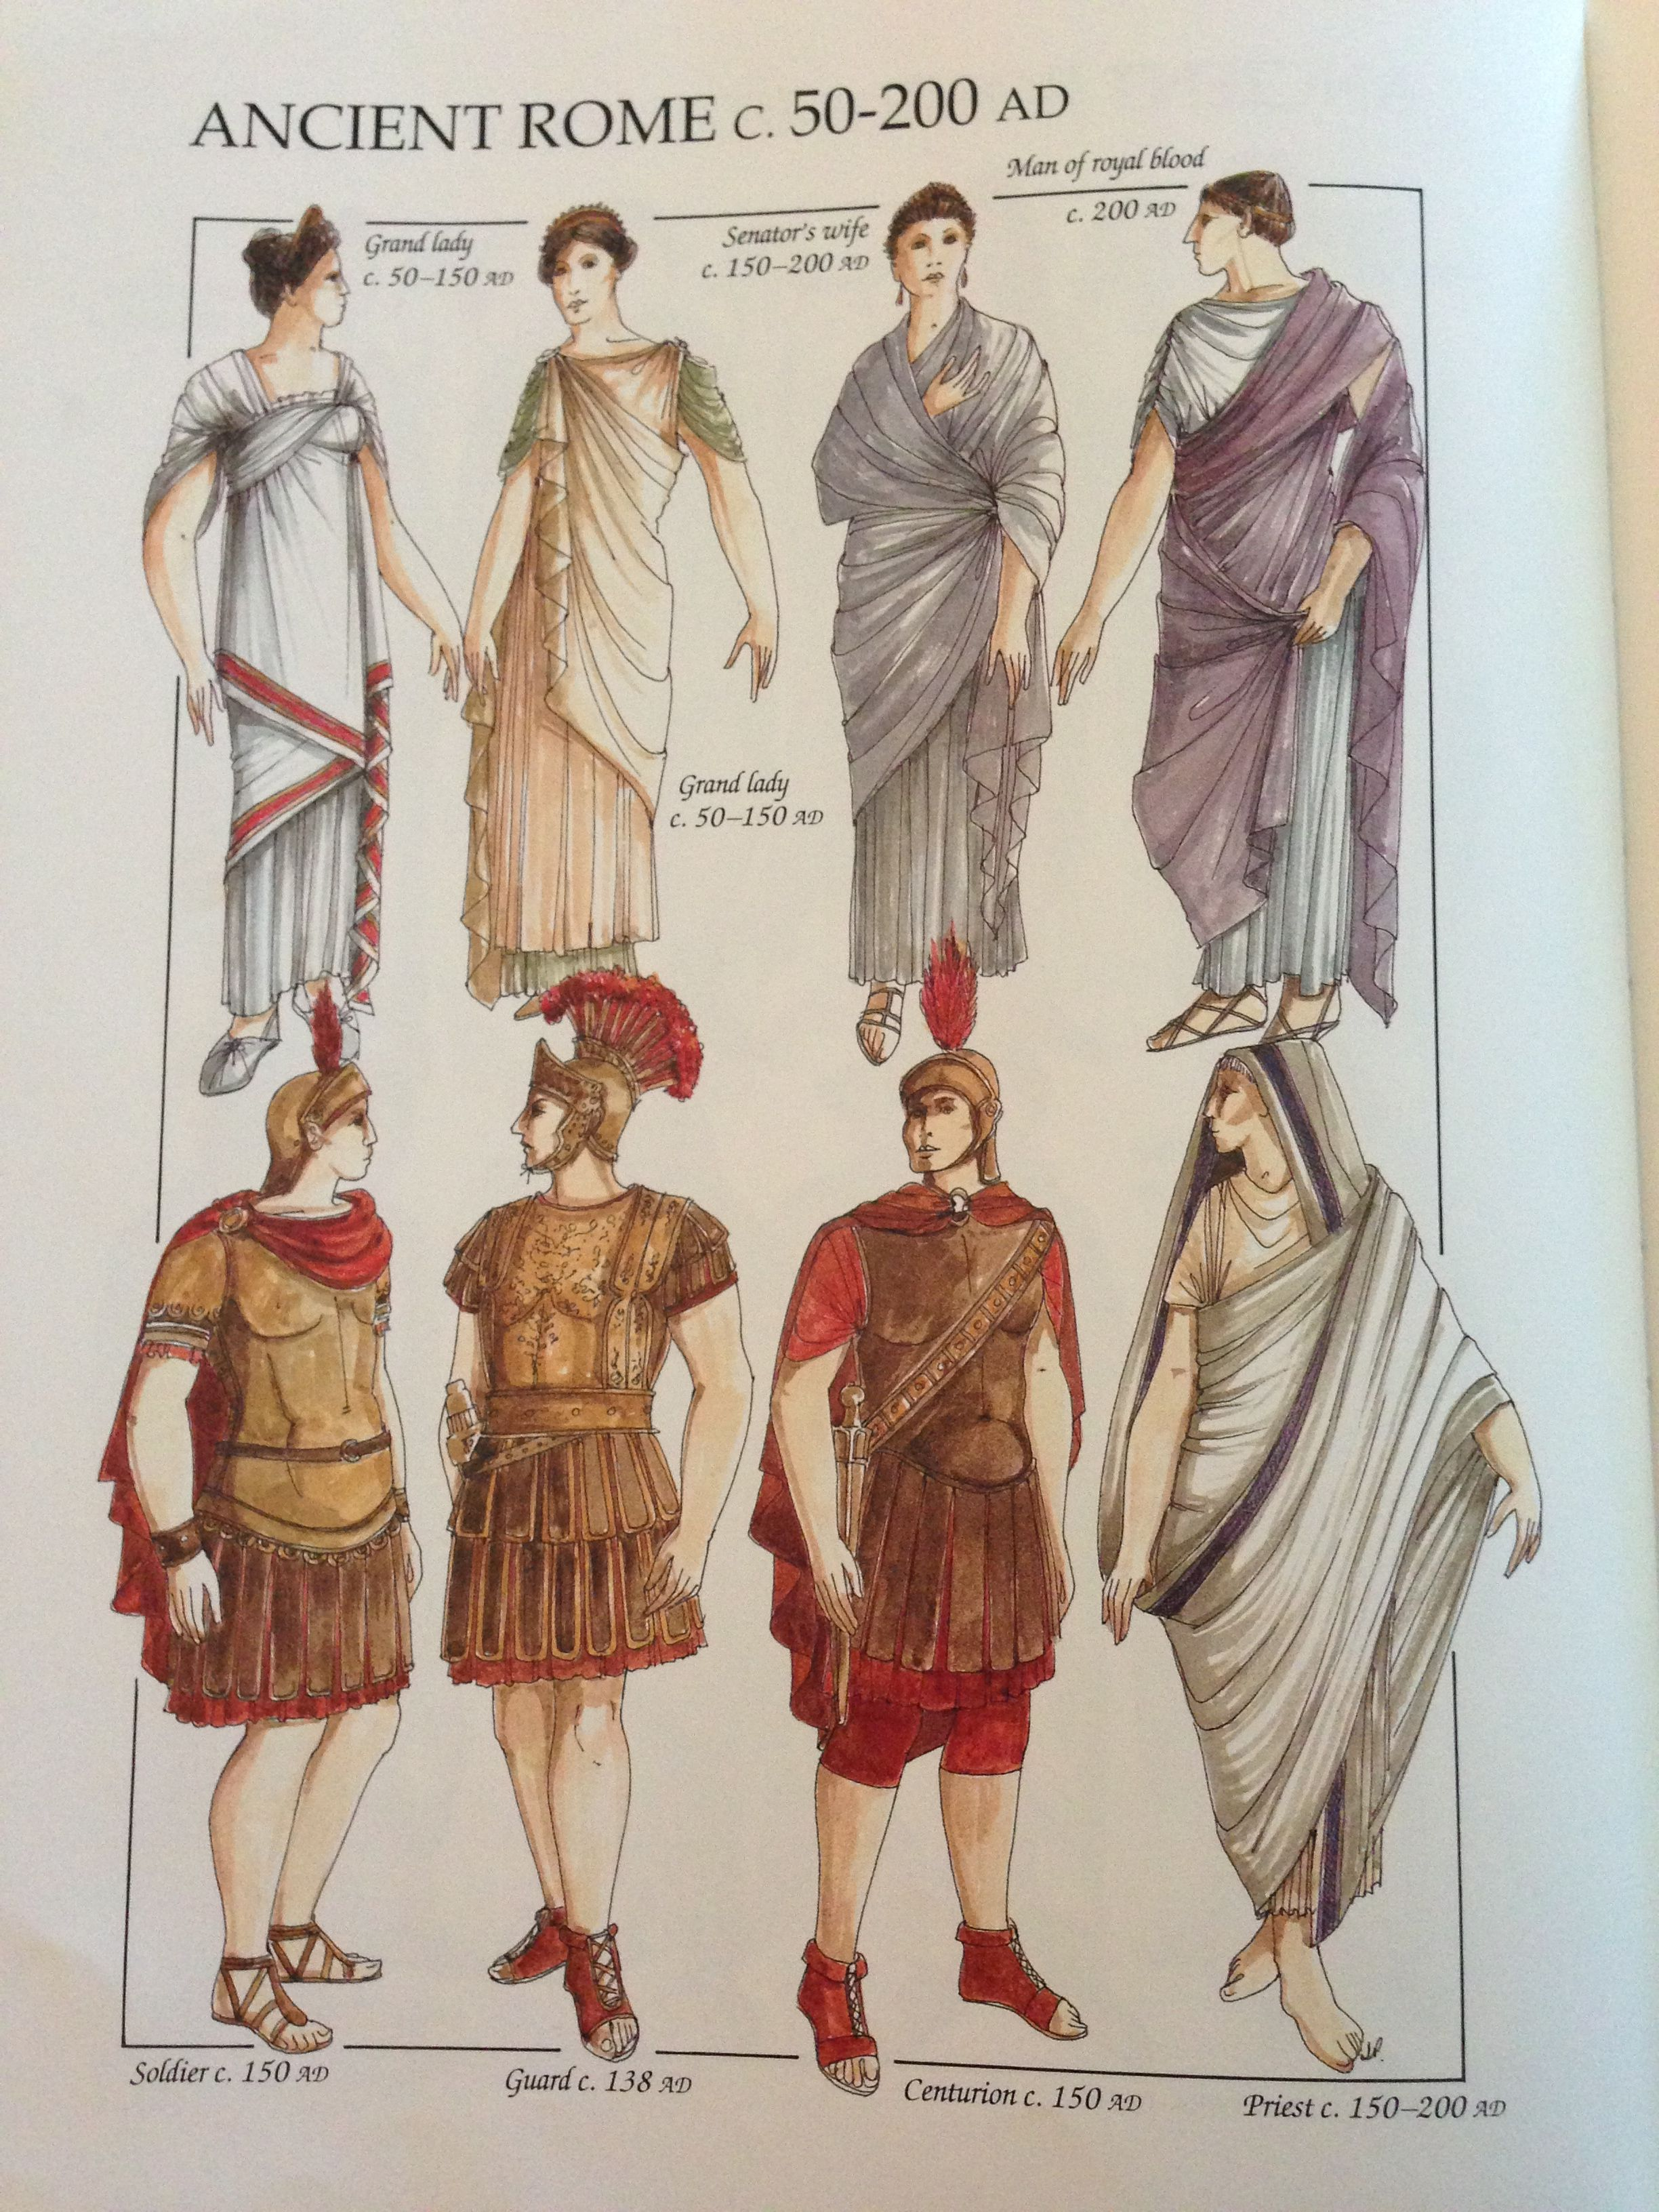 the women here are all wearing the traditional garments of the